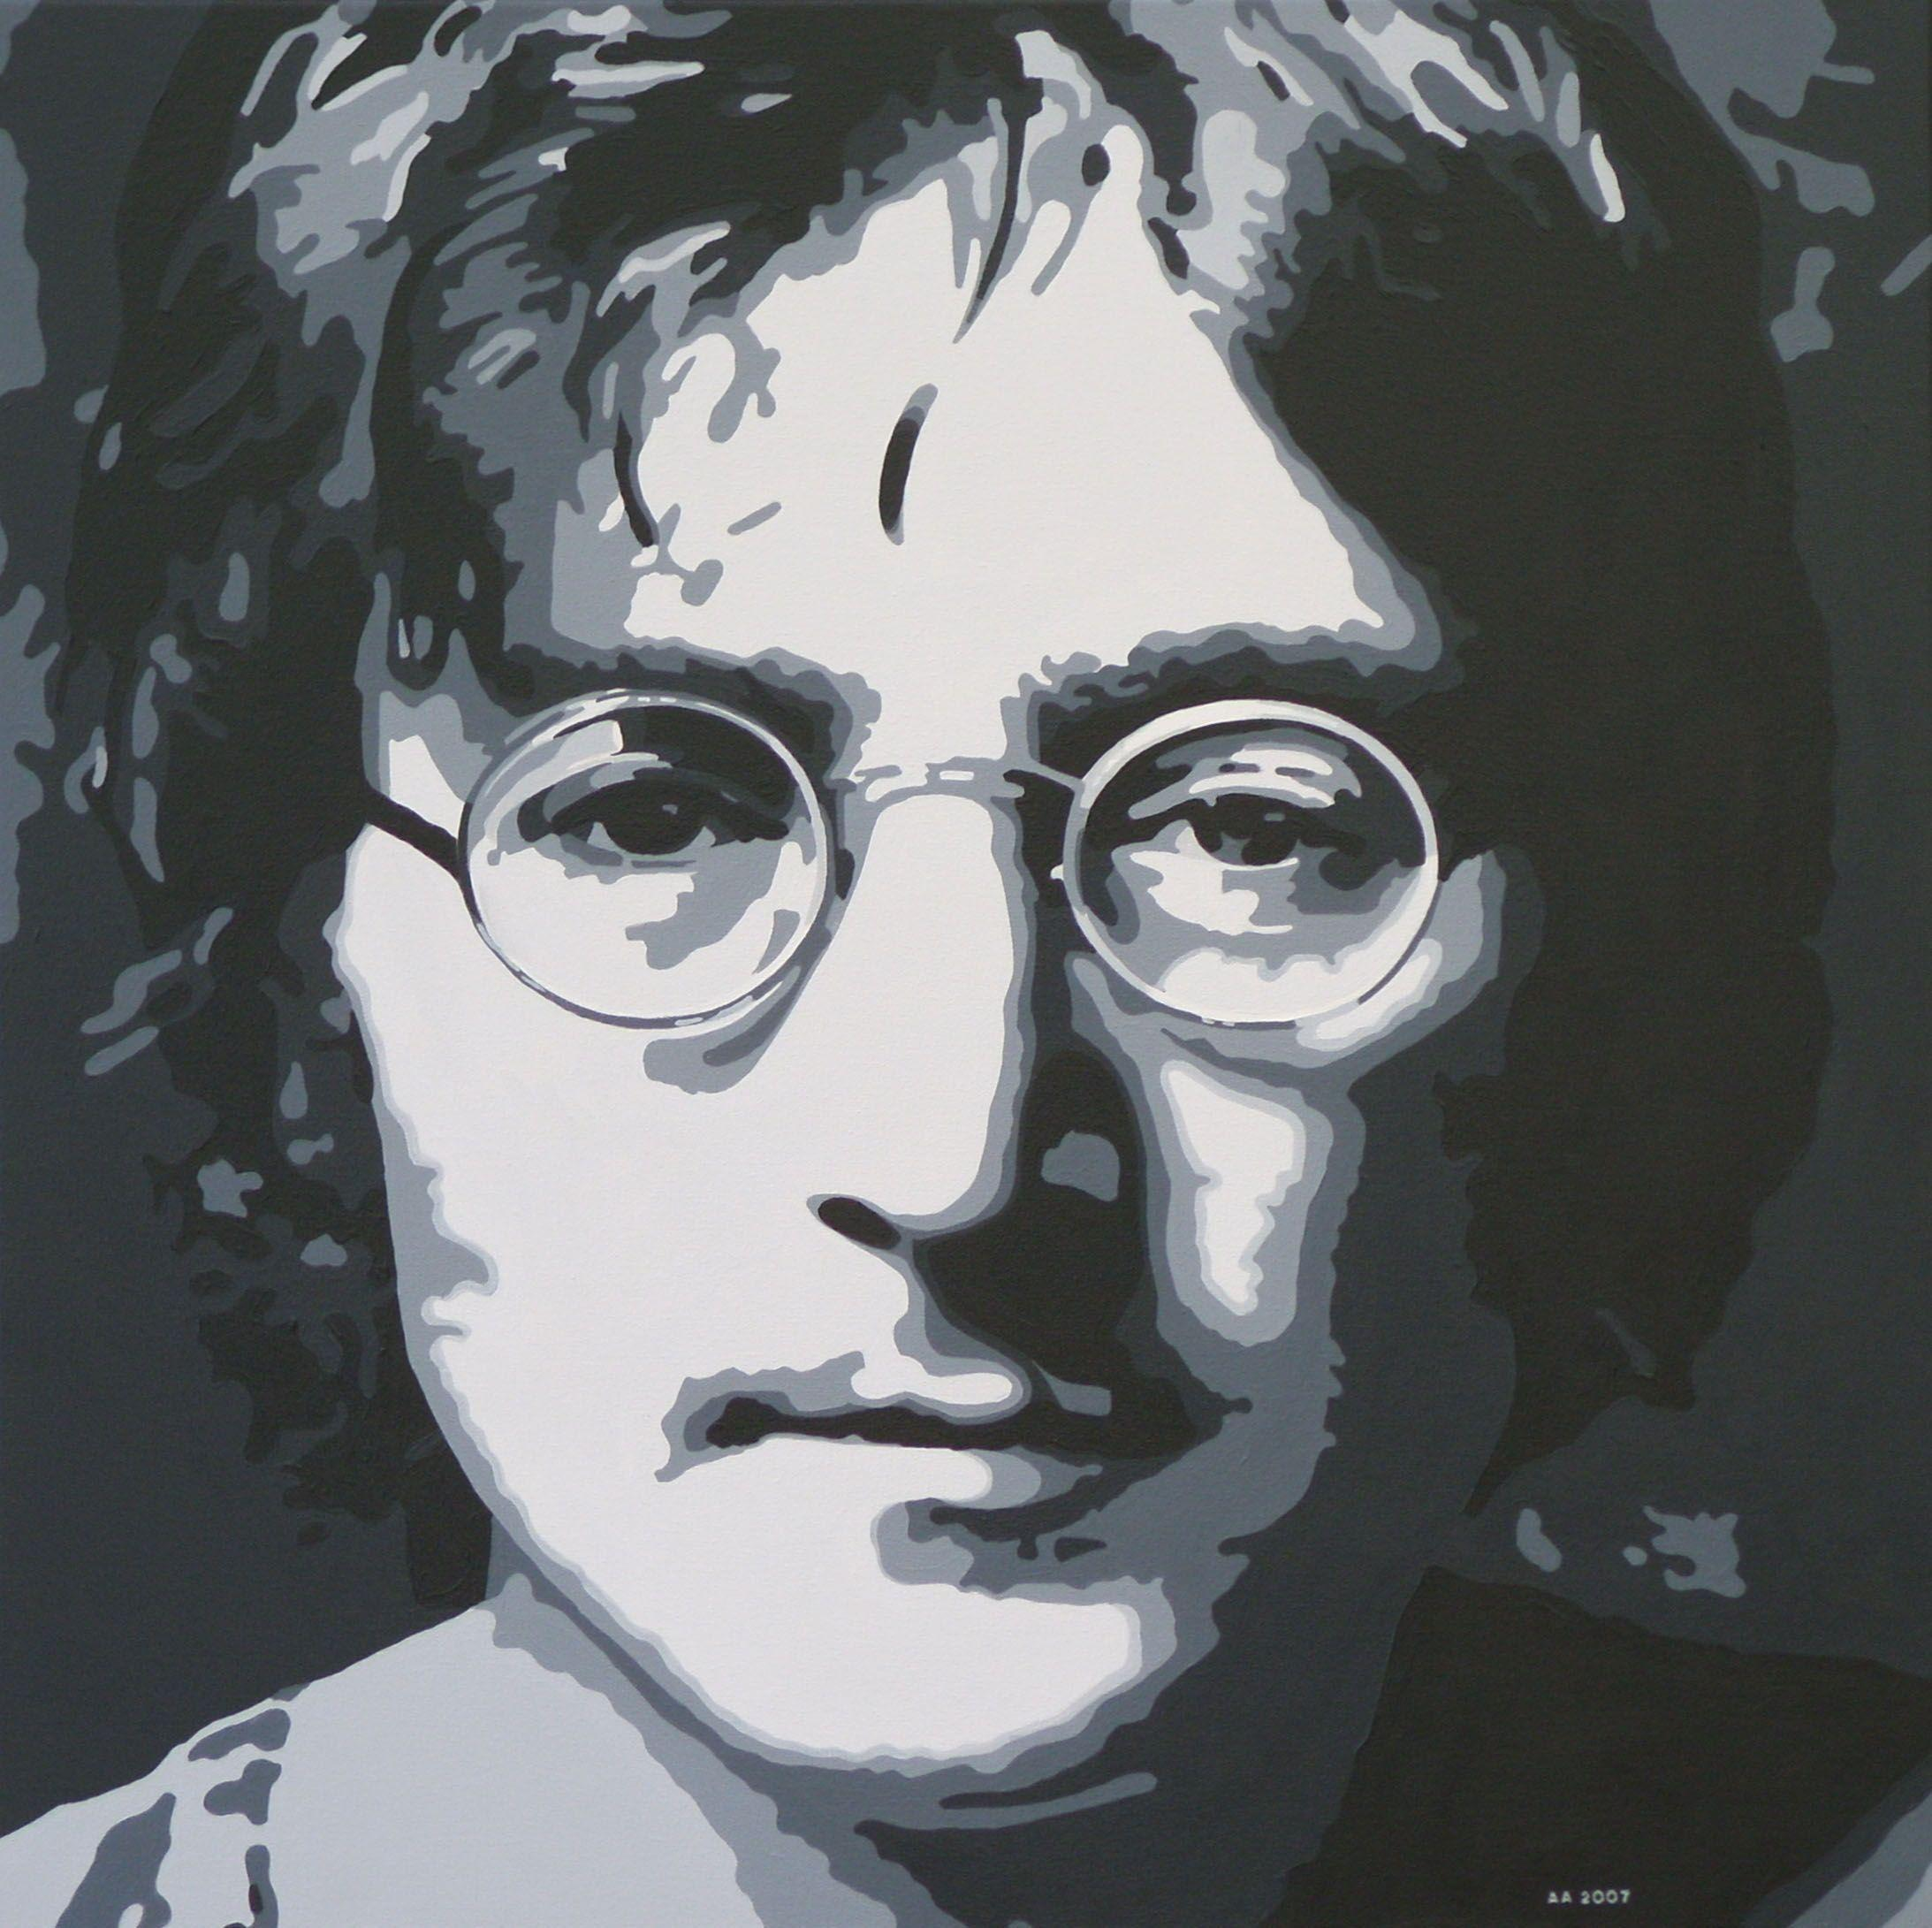 a biography of john lennon John lennon was a singer, songwriter, activist, artist, and writer whose life and work left an indelible mark on rock music and the world lennon first became famous.